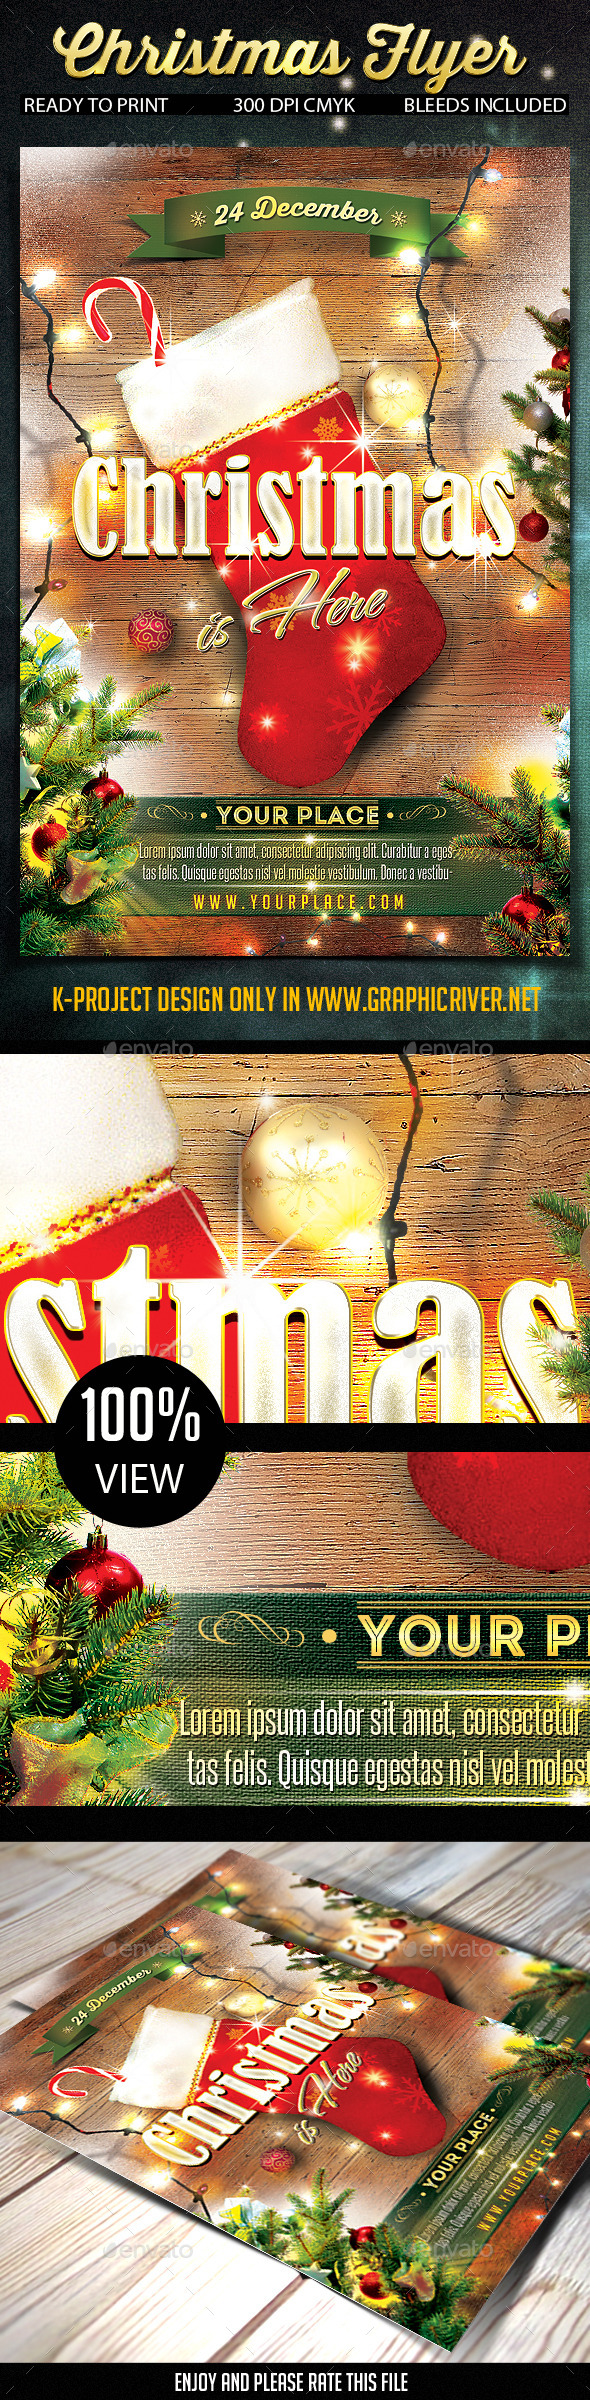 GraphicRiver Christmas Flyer 9527779